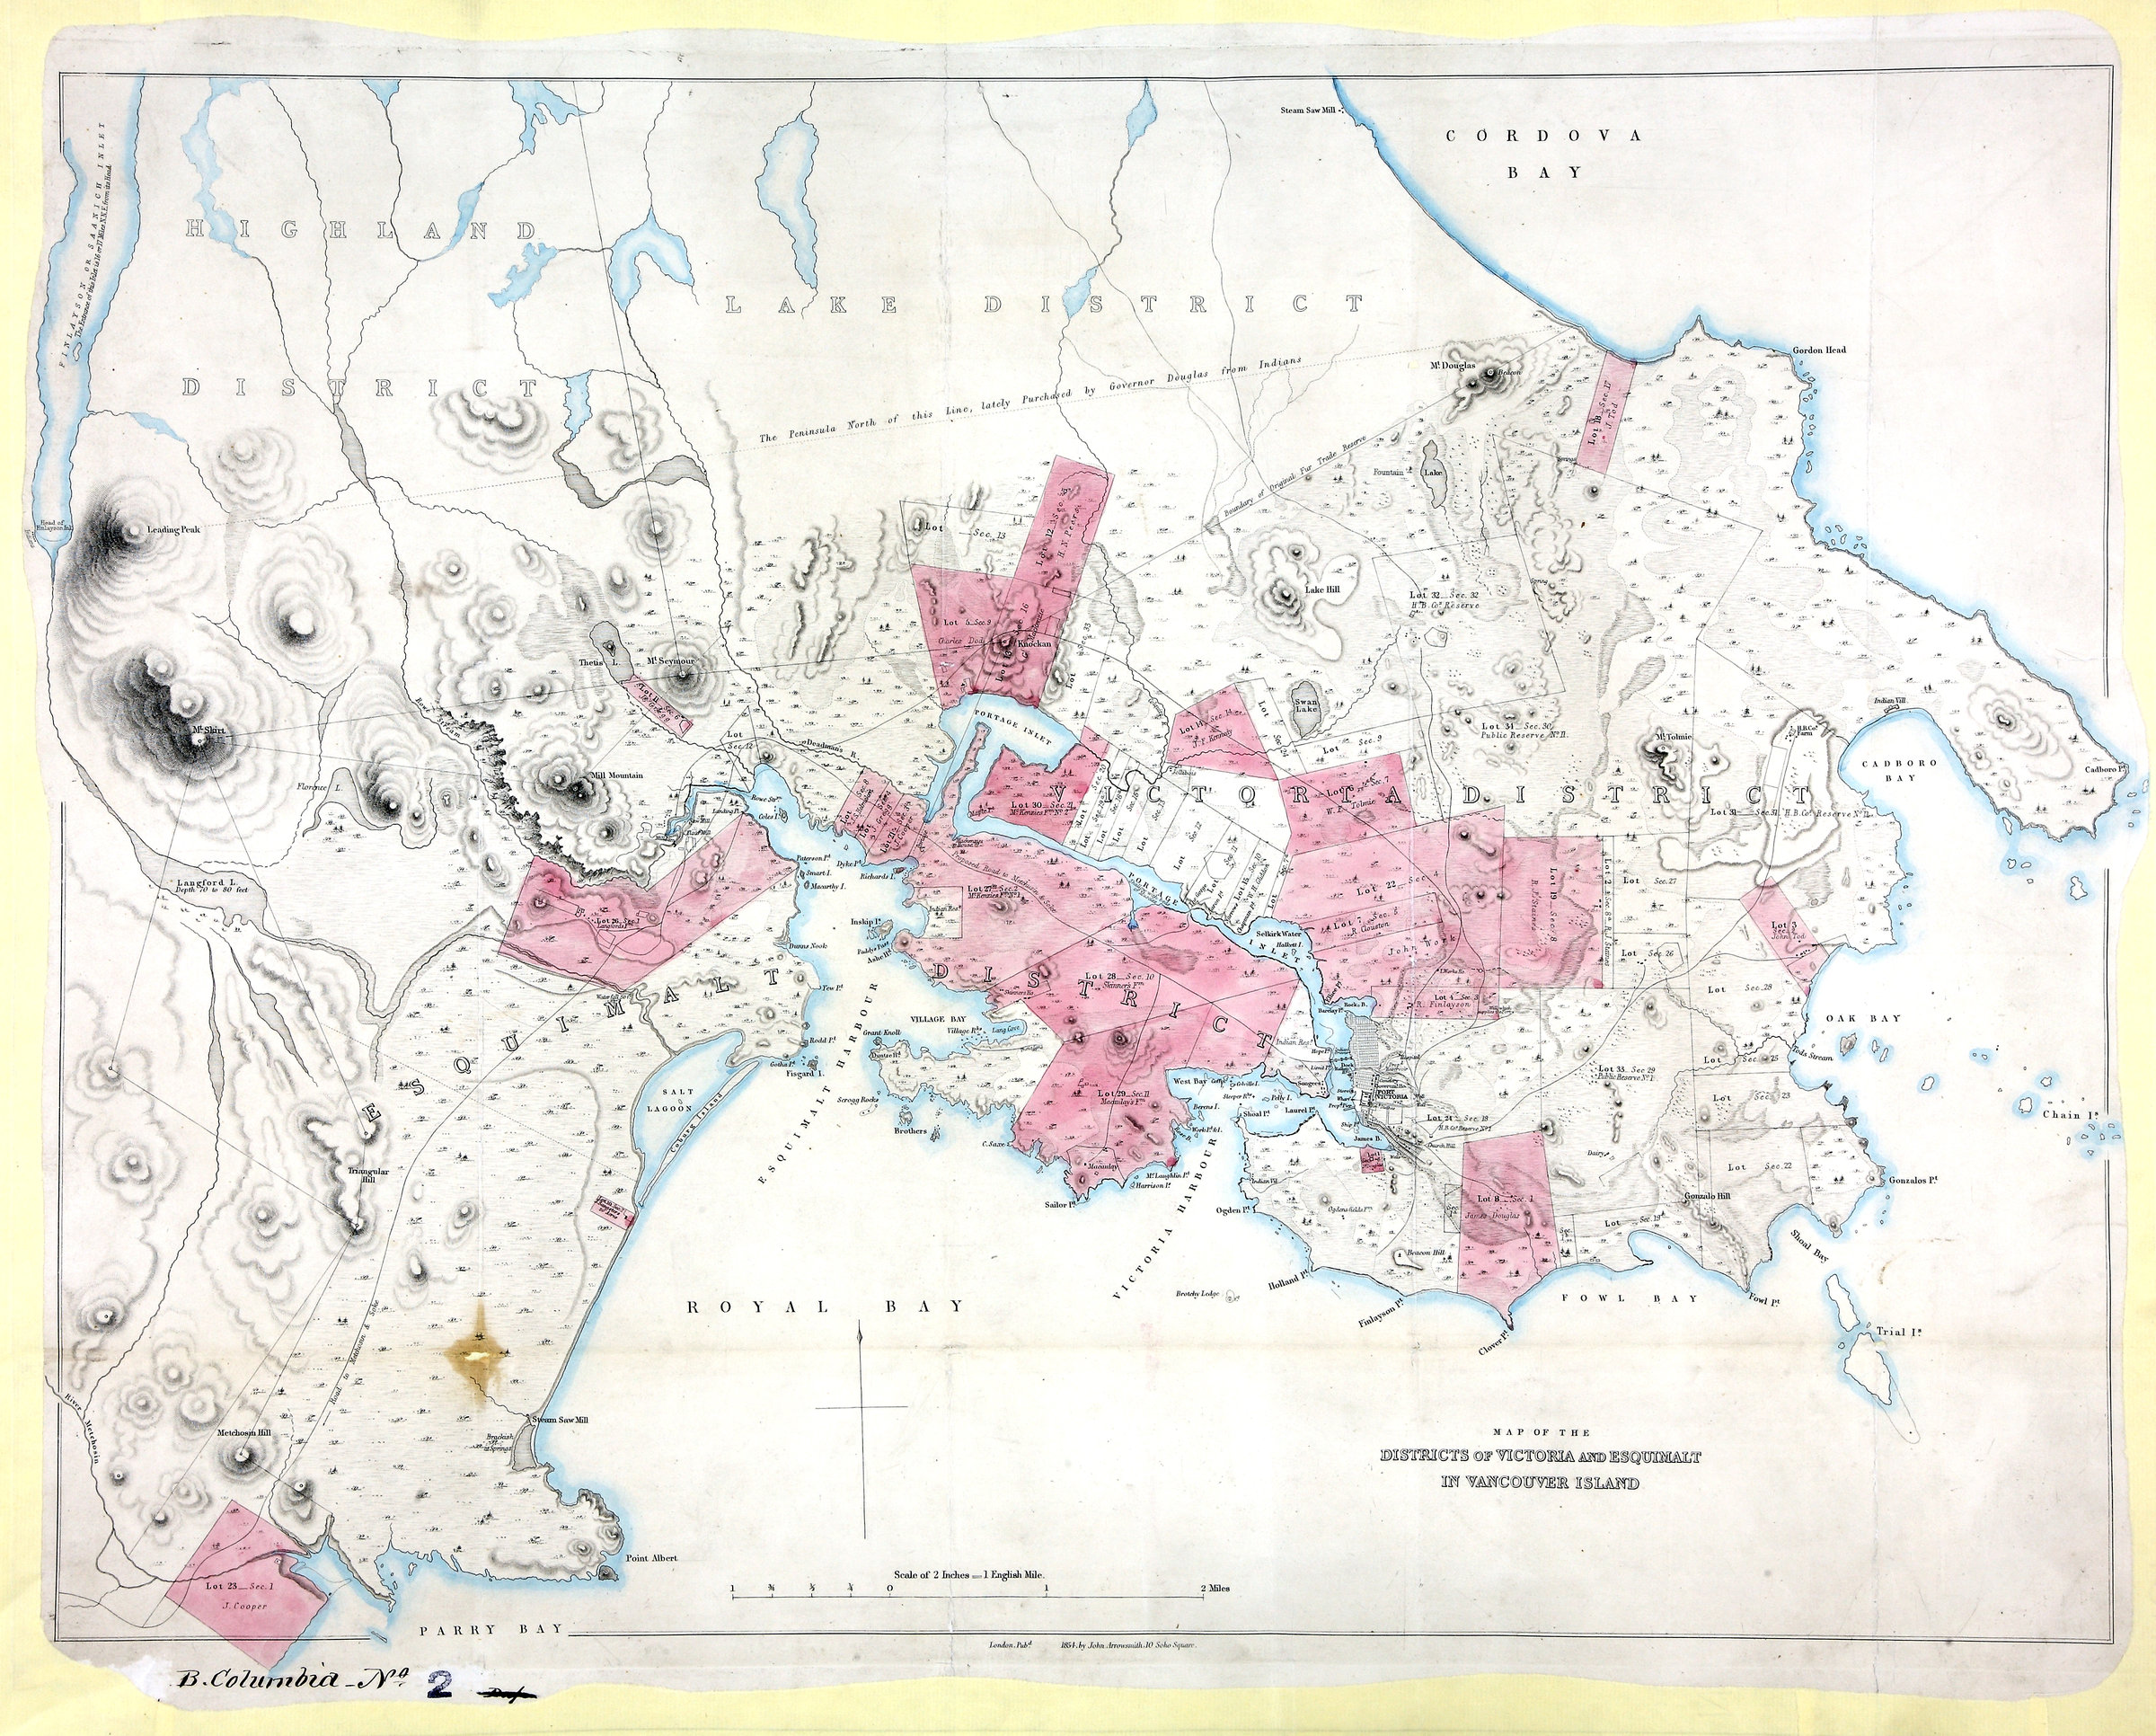 The colonial despatches map gallery map of the districts of victoria and esquimalt in vancouver island districts of victoria and esquimalt in vancouver island nvjuhfo Images